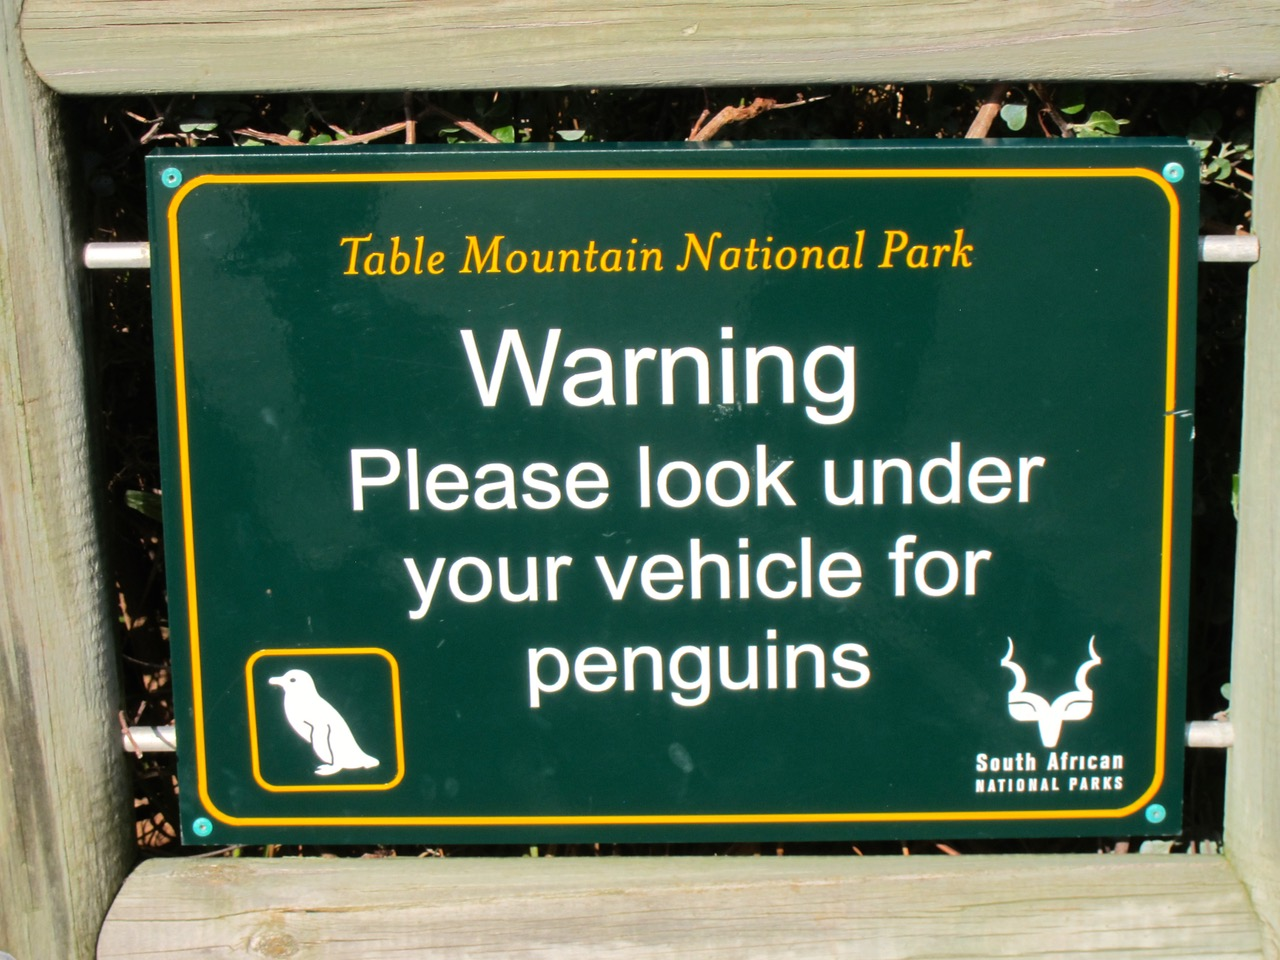 Wildlife watching sign warning to look under vehicle for penguins